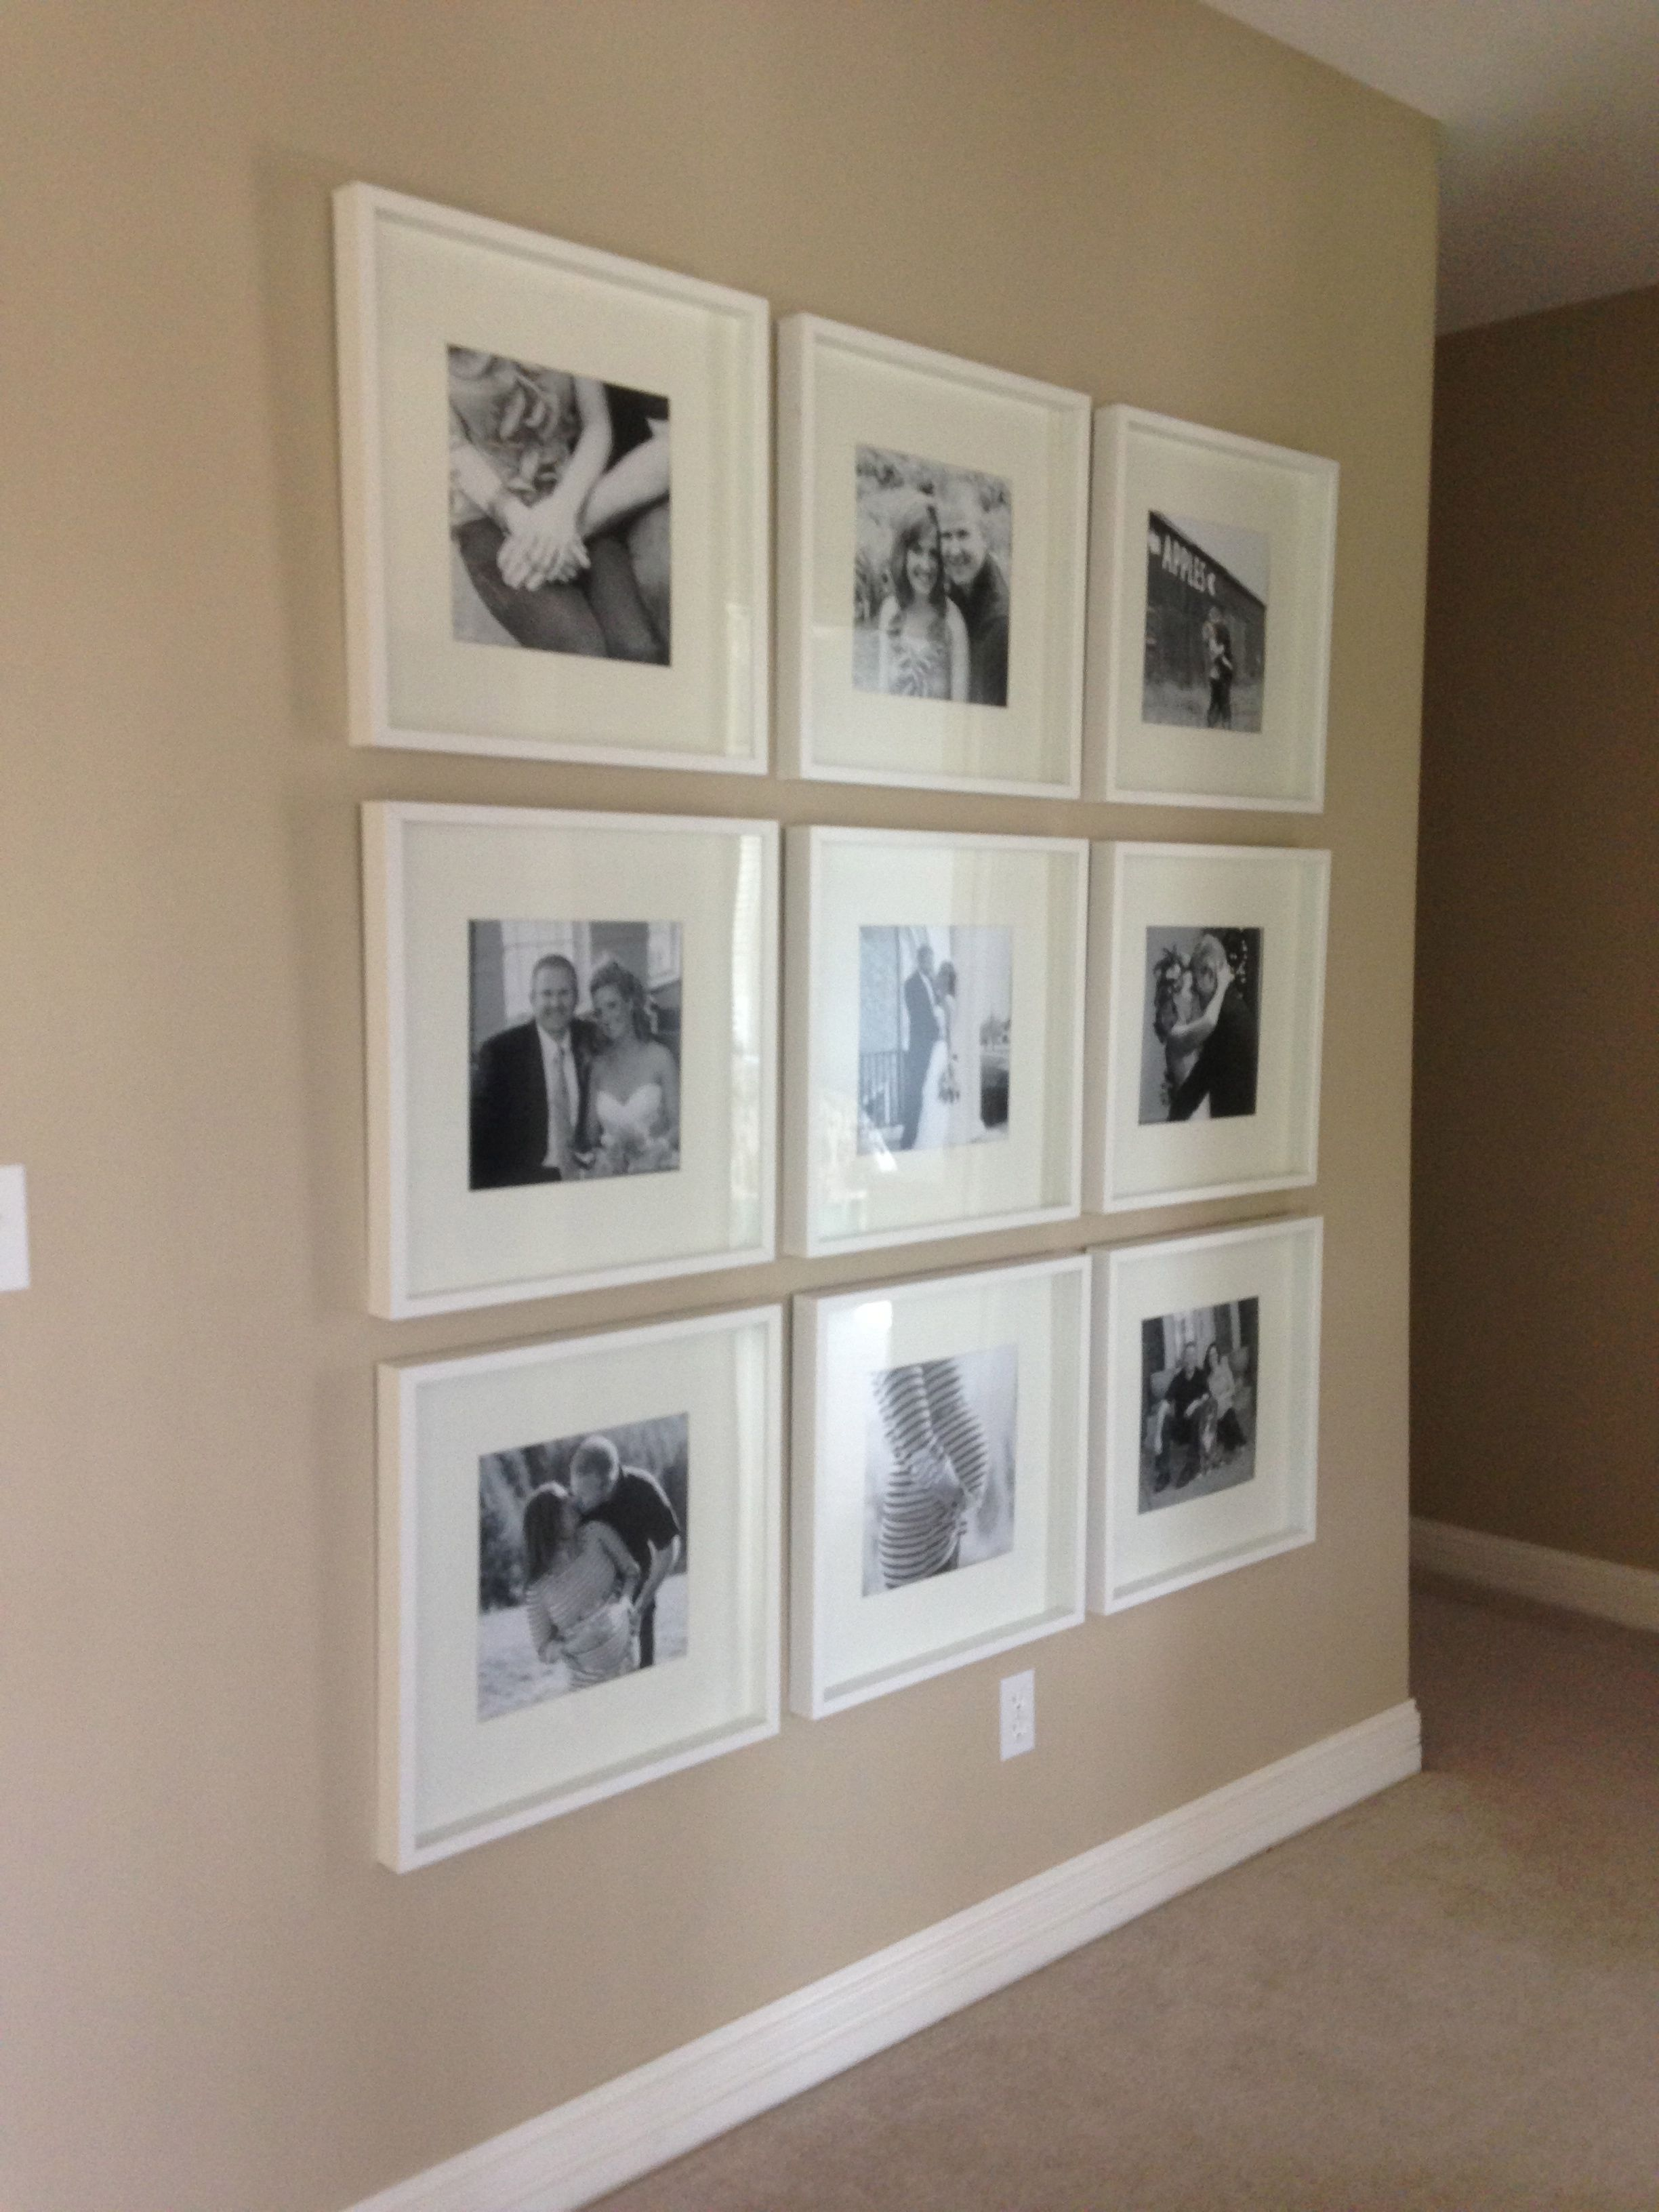 Pin By Roseanne Rubin On Pinterest Projects Come To Life Ikea Gallery Wall Frames On Wall Ikea Frames